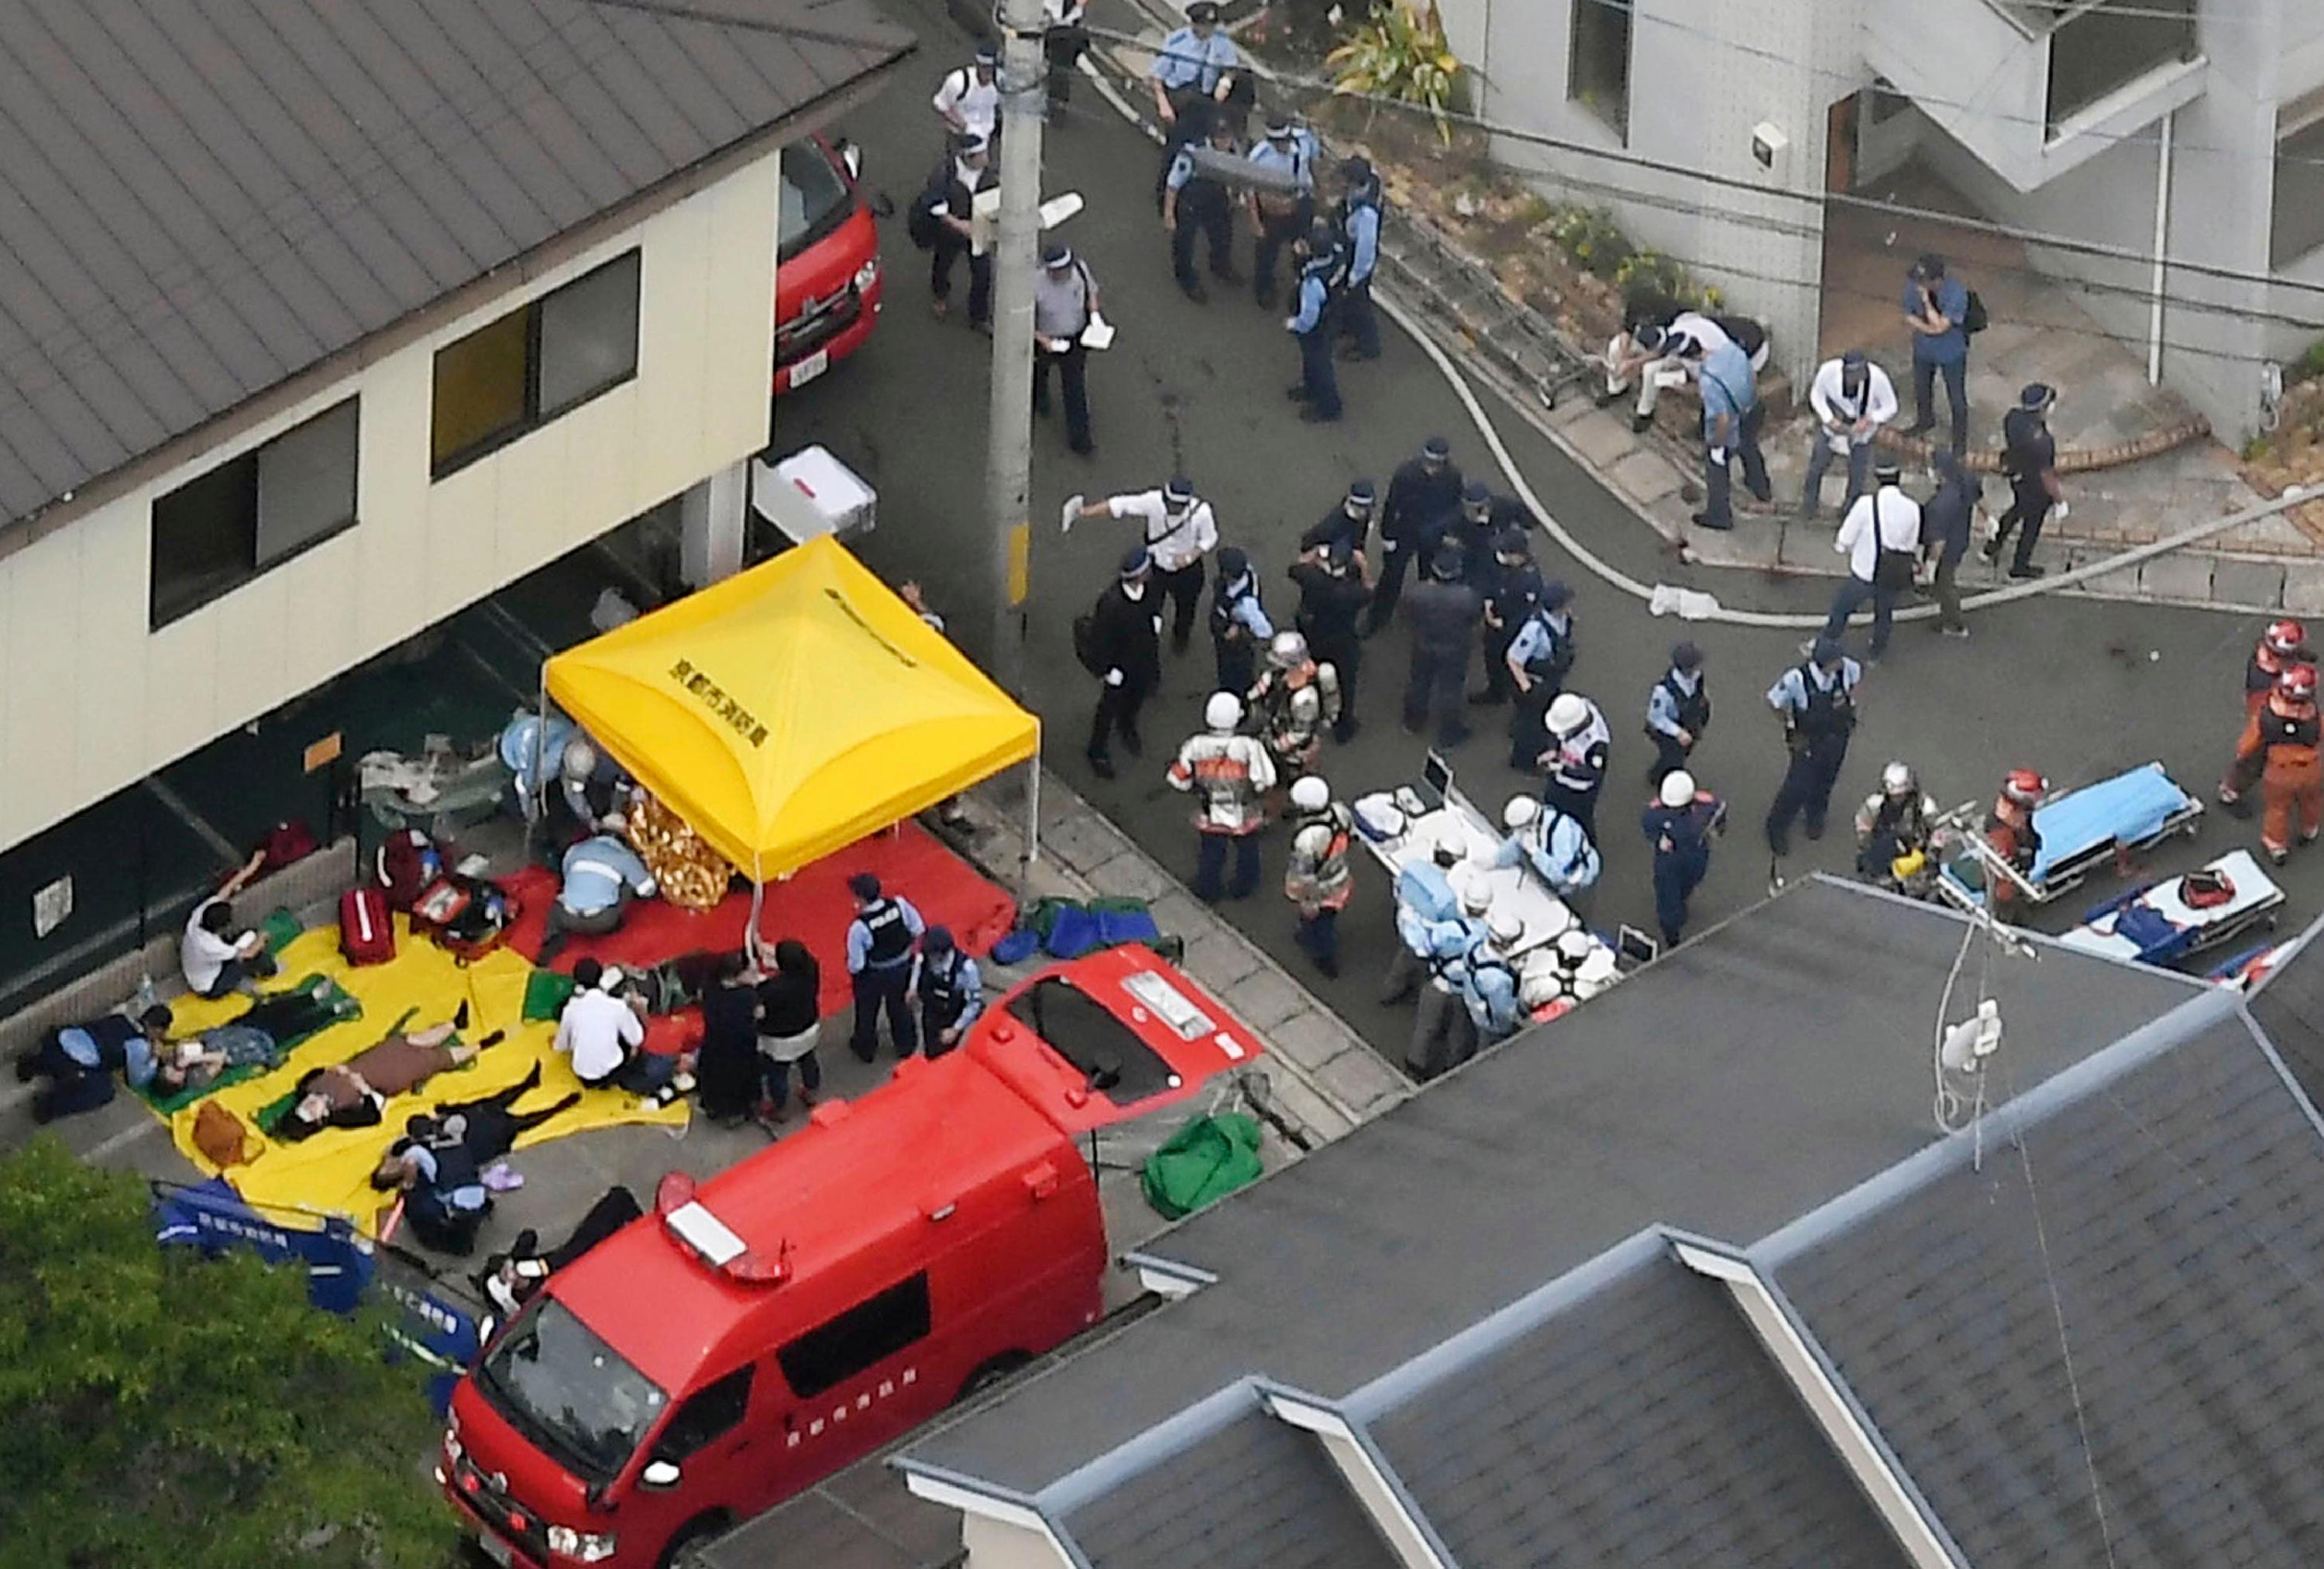 People injured in a fire are treated near a Kyoto Animation building in Kyoto, western Japan, Thursday, July 18, 2019. The fire broke out in the three-story building in Japan's ancient capital of Kyoto, after a suspect sprayed an unidentified liquid to accelerate the blaze, Kyoto prefectural police and fire department officials said.(Kyodo News via AP)